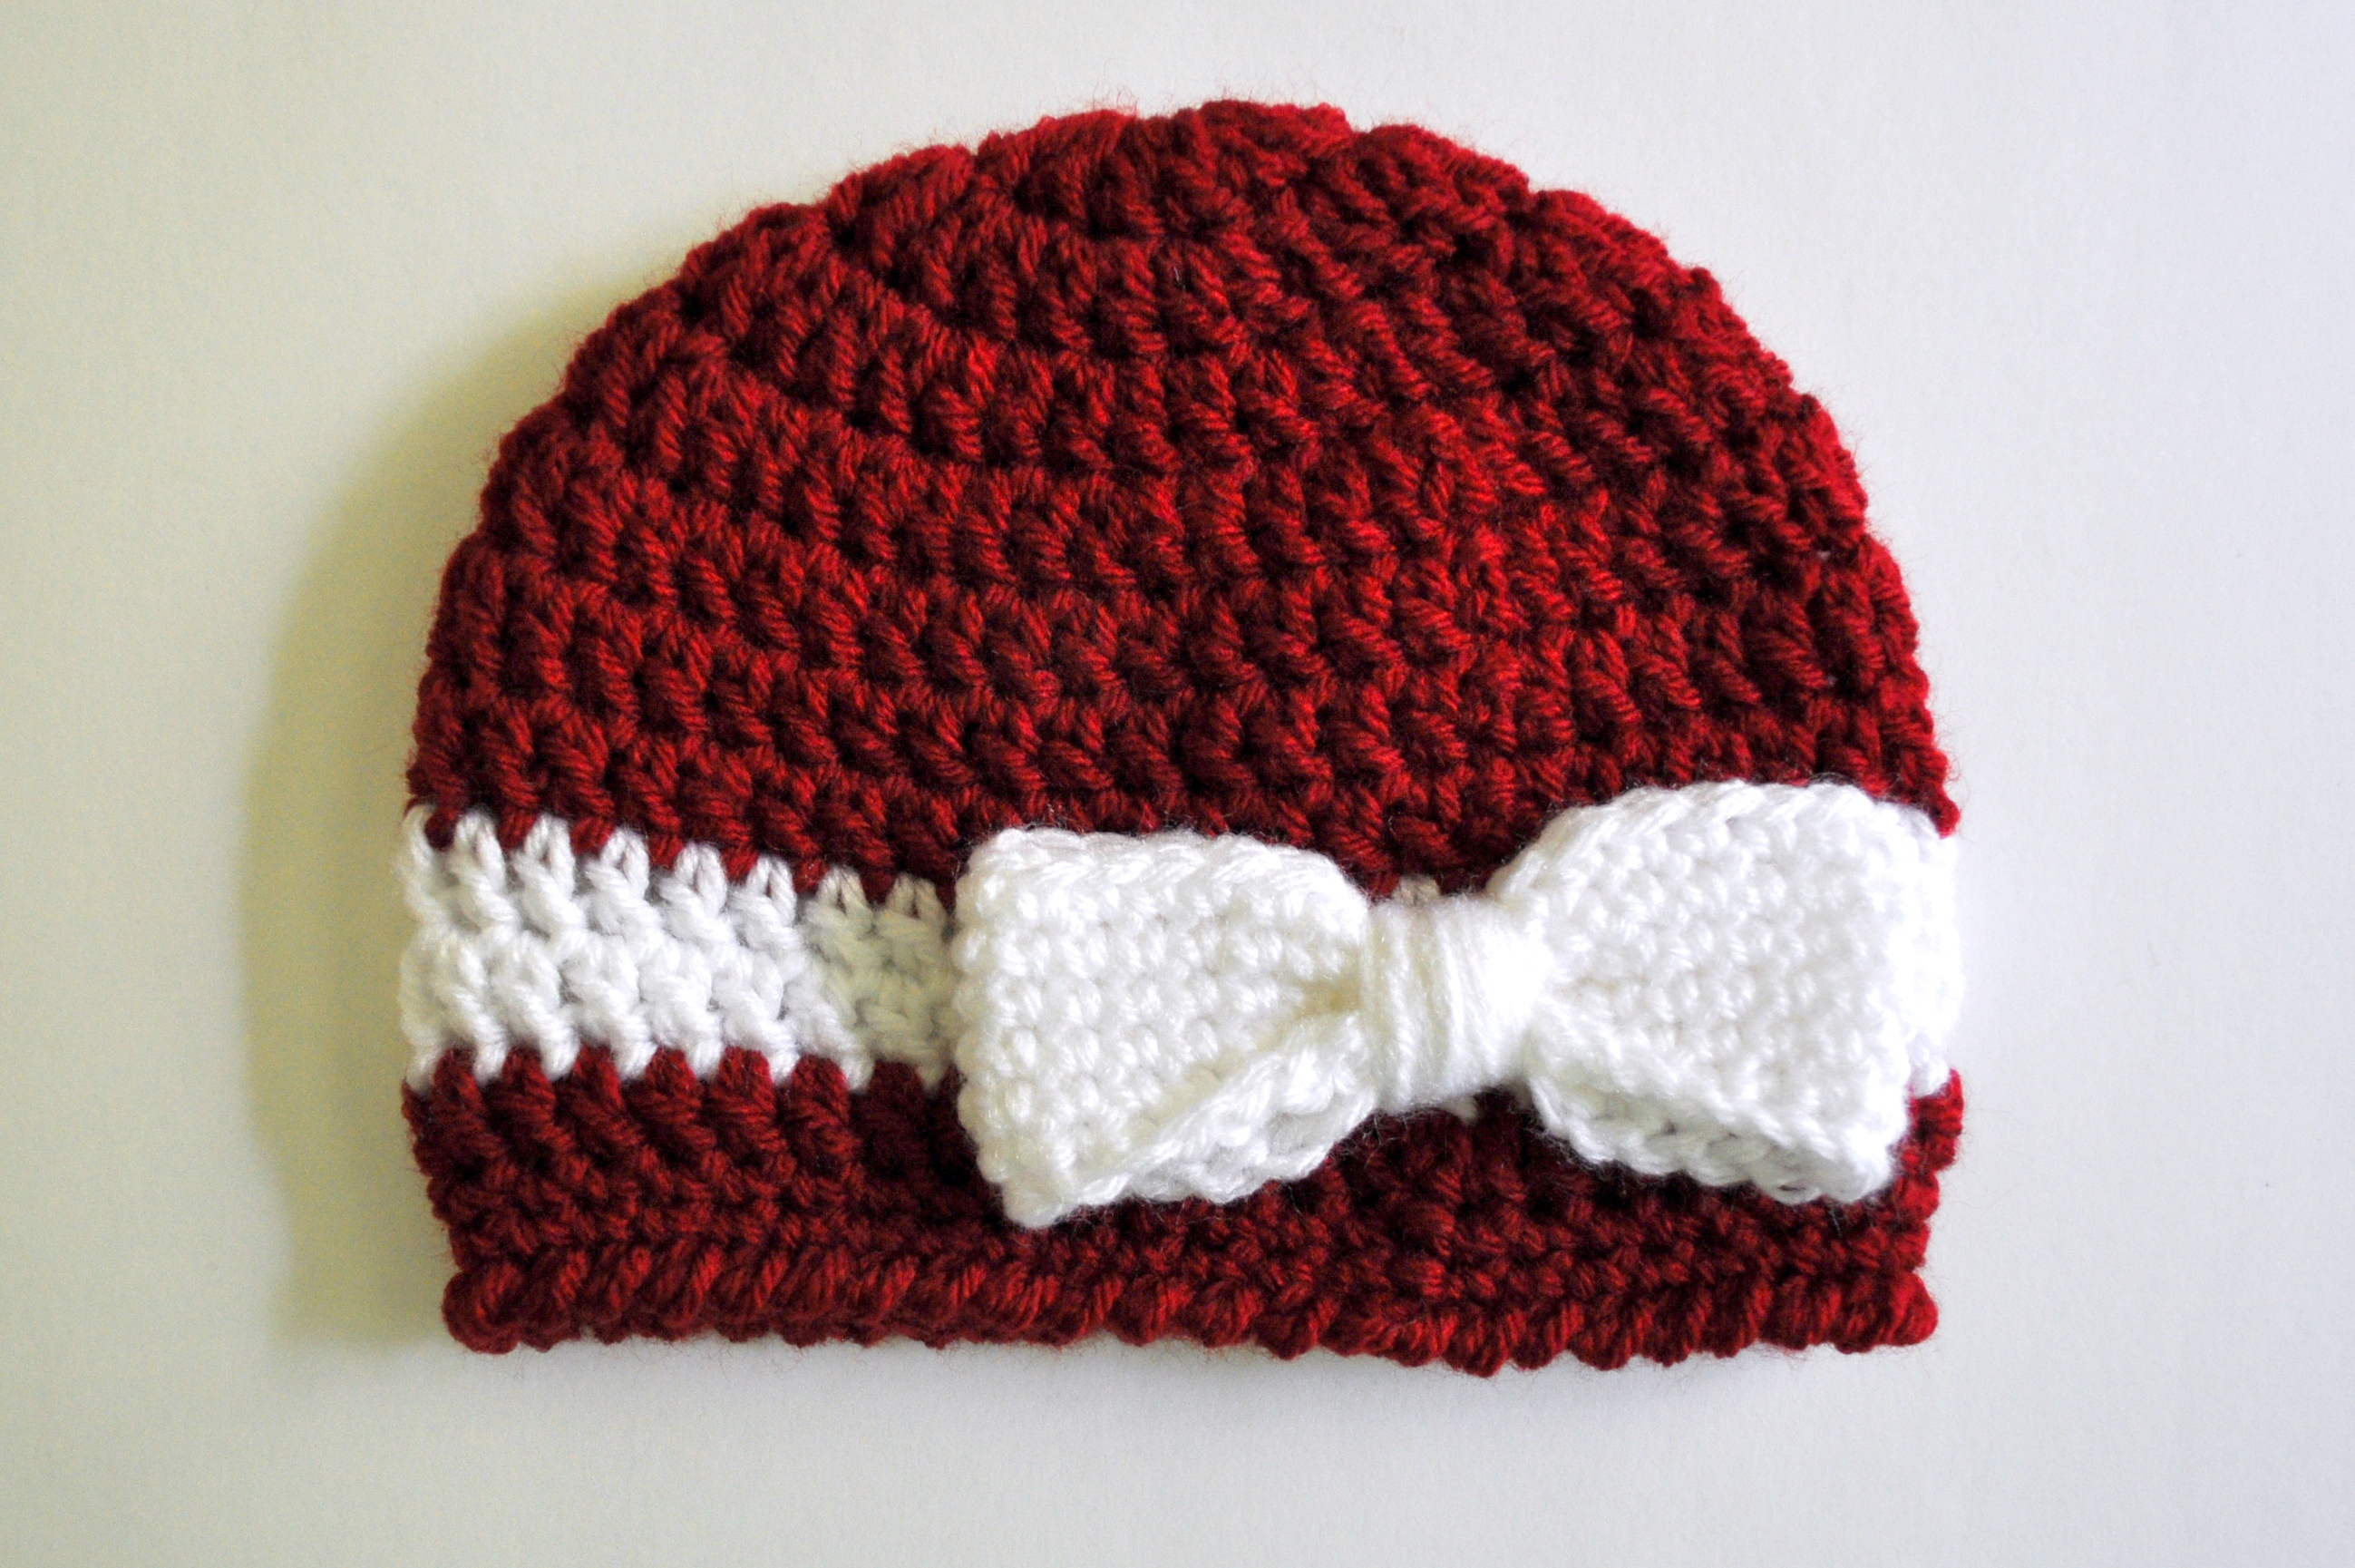 Crochet Hat Patterns Free : 25 Easy Crochet Bow Patterns Guide Patterns